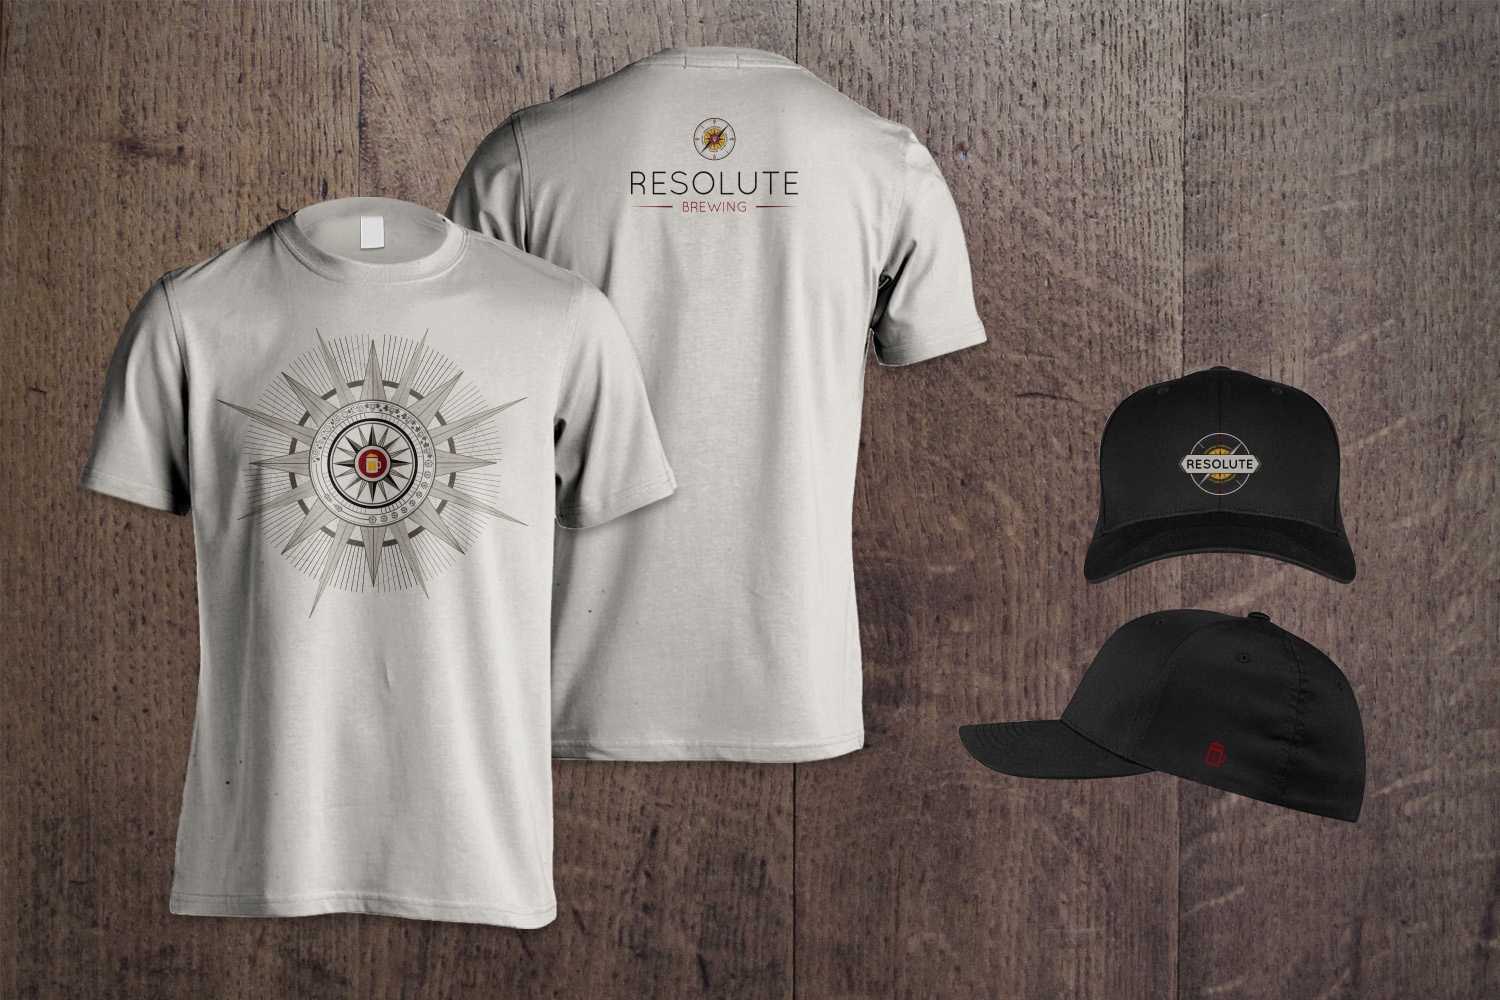 T-shirt and hat designs